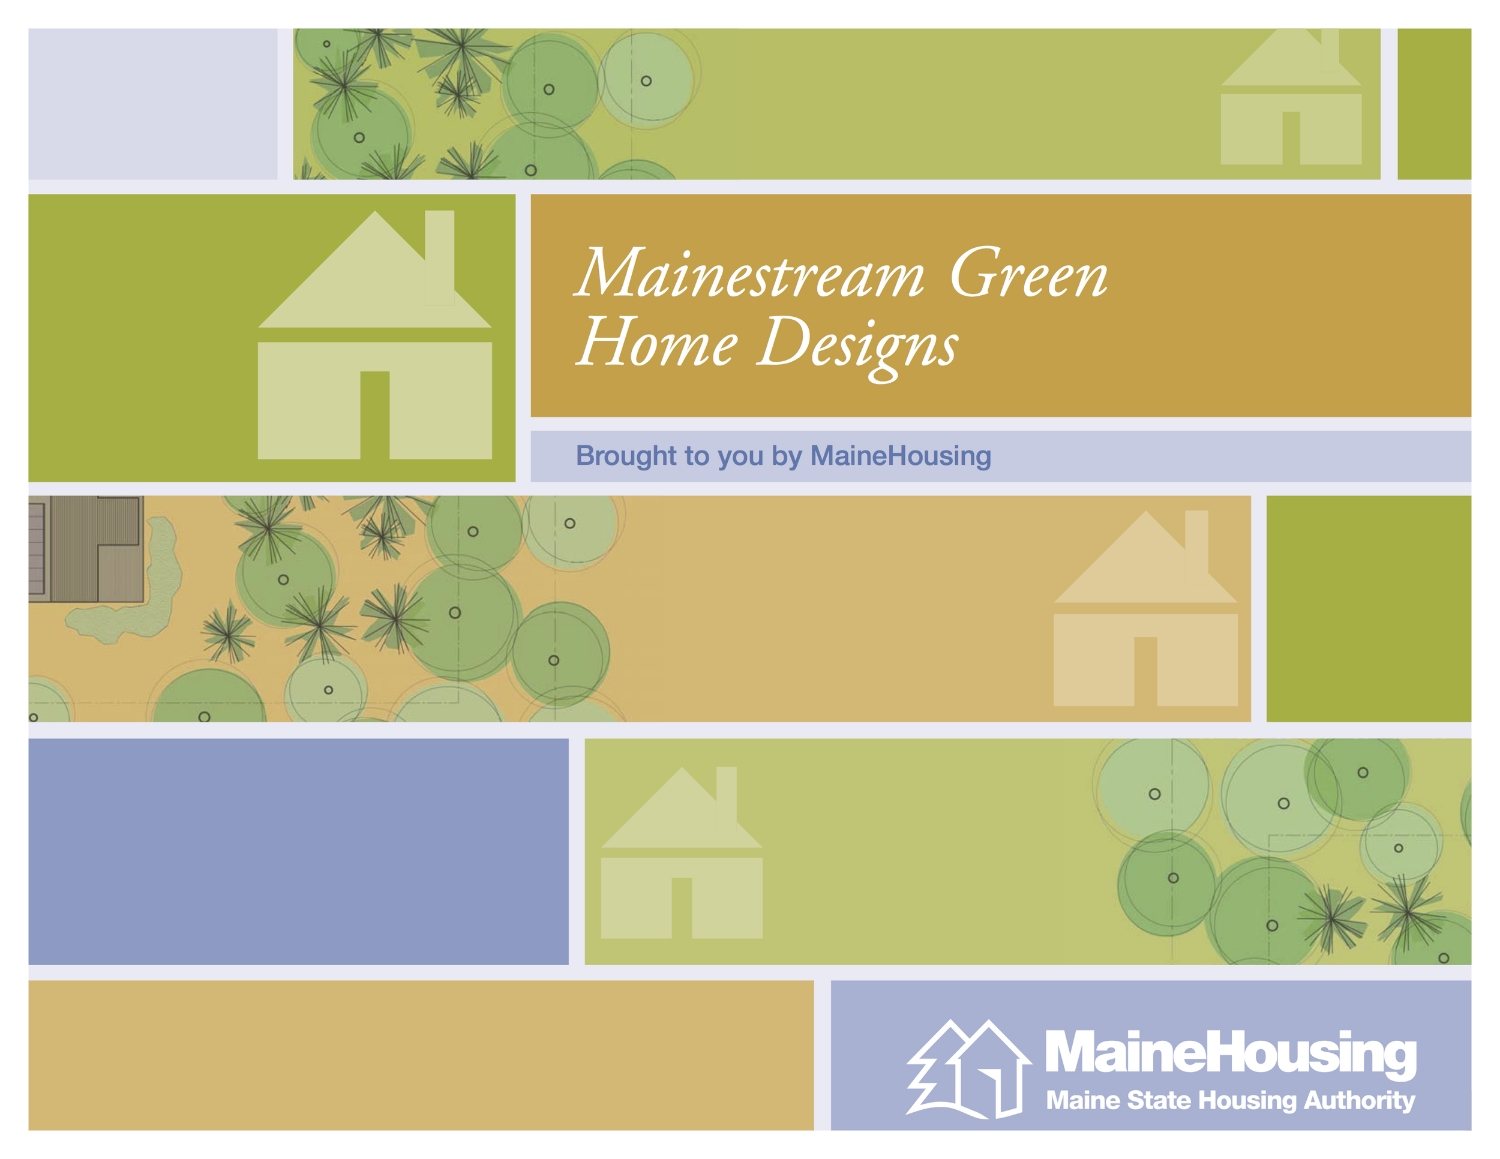 GreenHomeDesignPublication cover.jpg